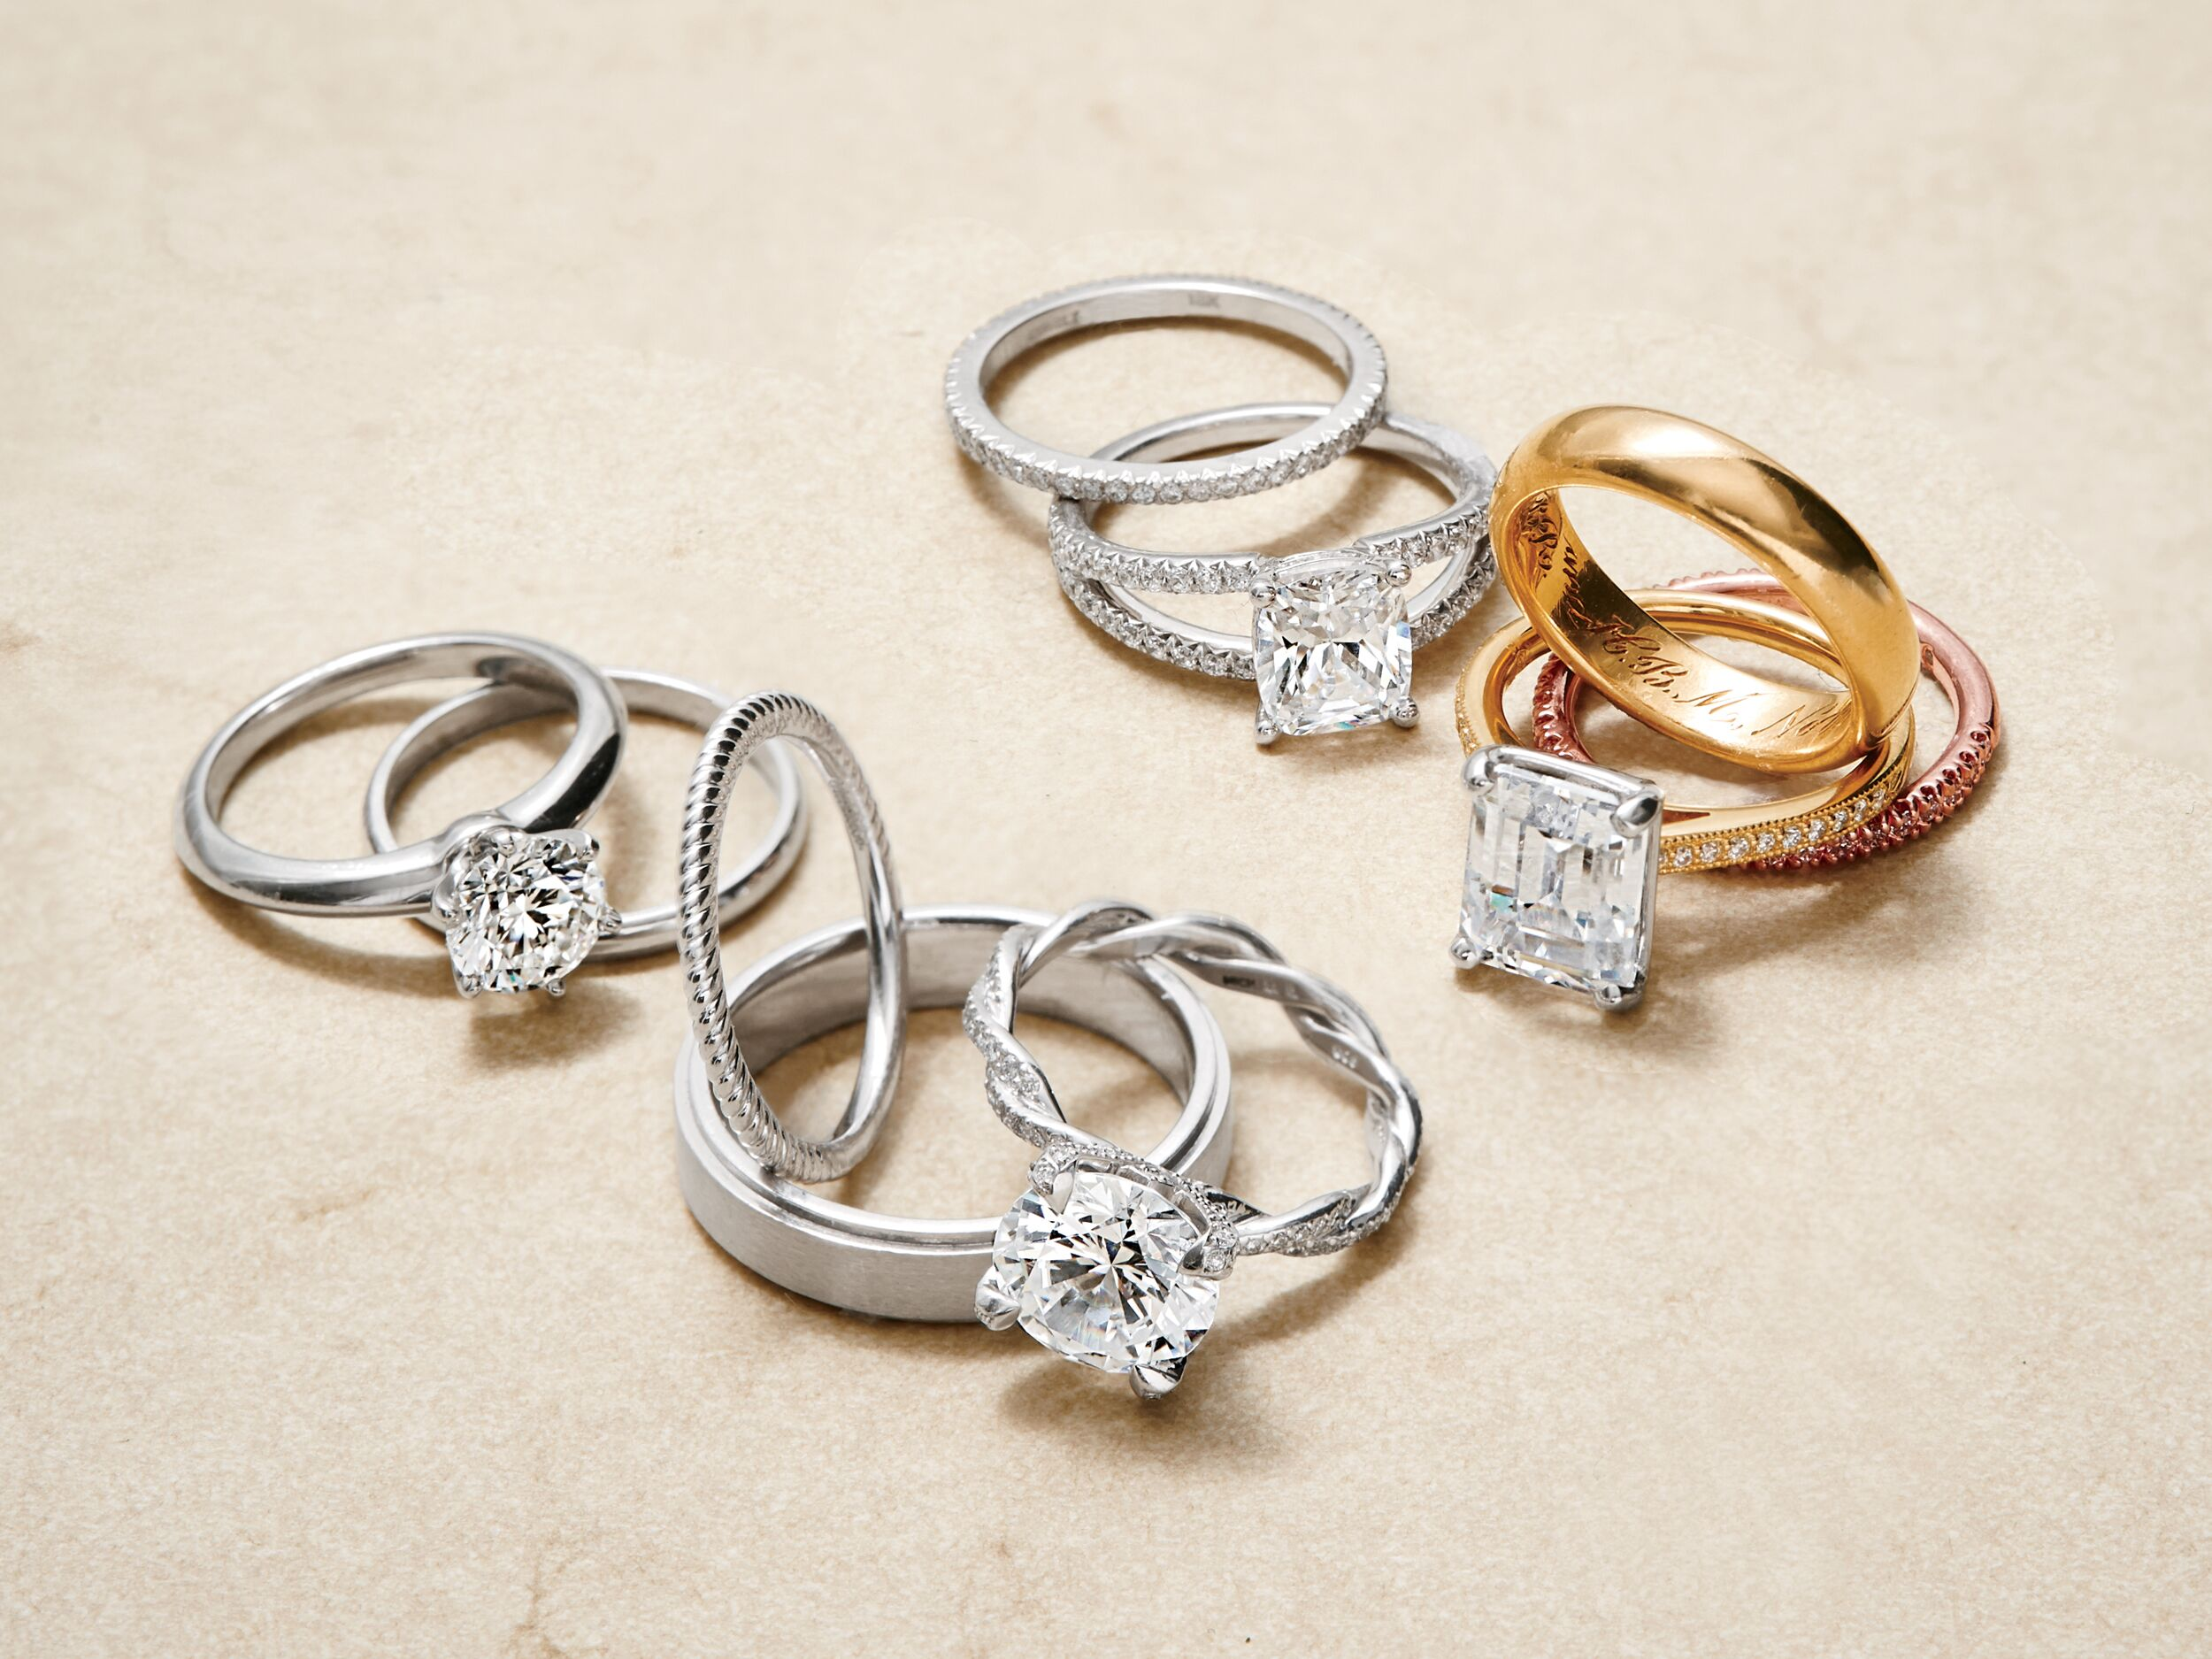 11 ways to pick the perfect wedding ring - Wedding Ring Pics